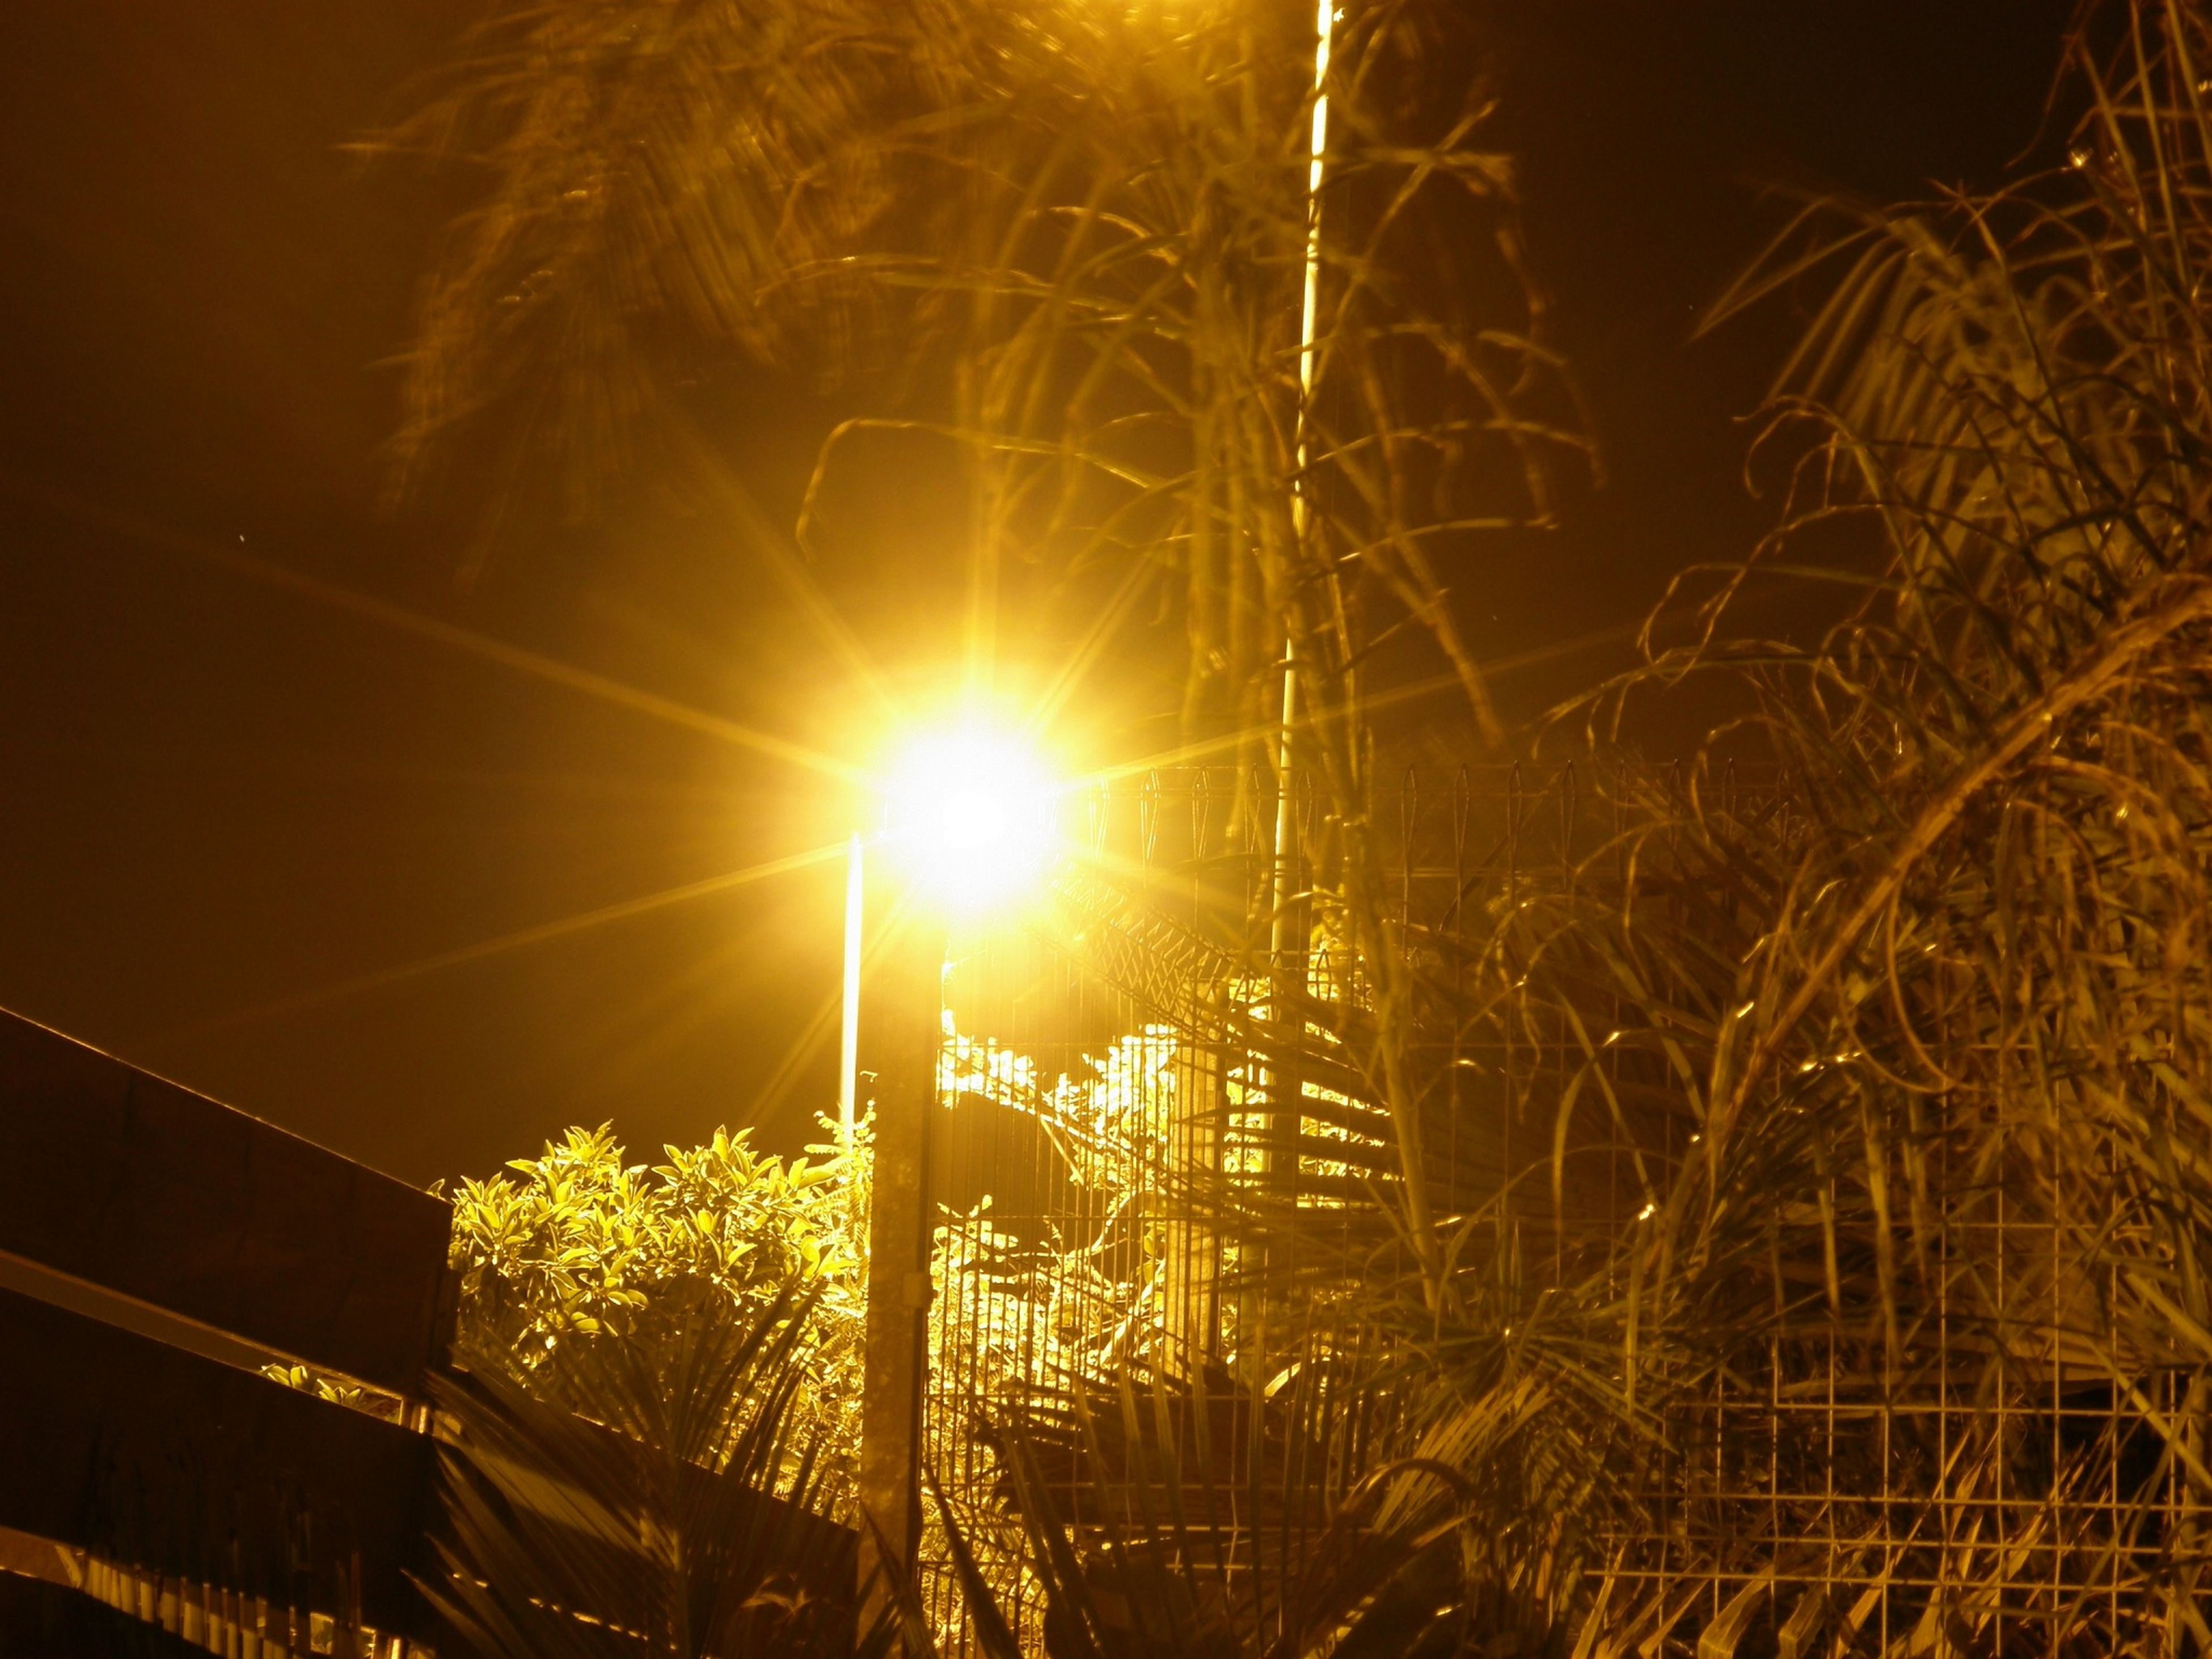 night, illuminated, tree, low angle view, sky, street light, outdoors, nature, no people, silhouette, lens flare, built structure, sunlight, lighting equipment, fence, glowing, bare tree, light - natural phenomenon, electricity, building exterior